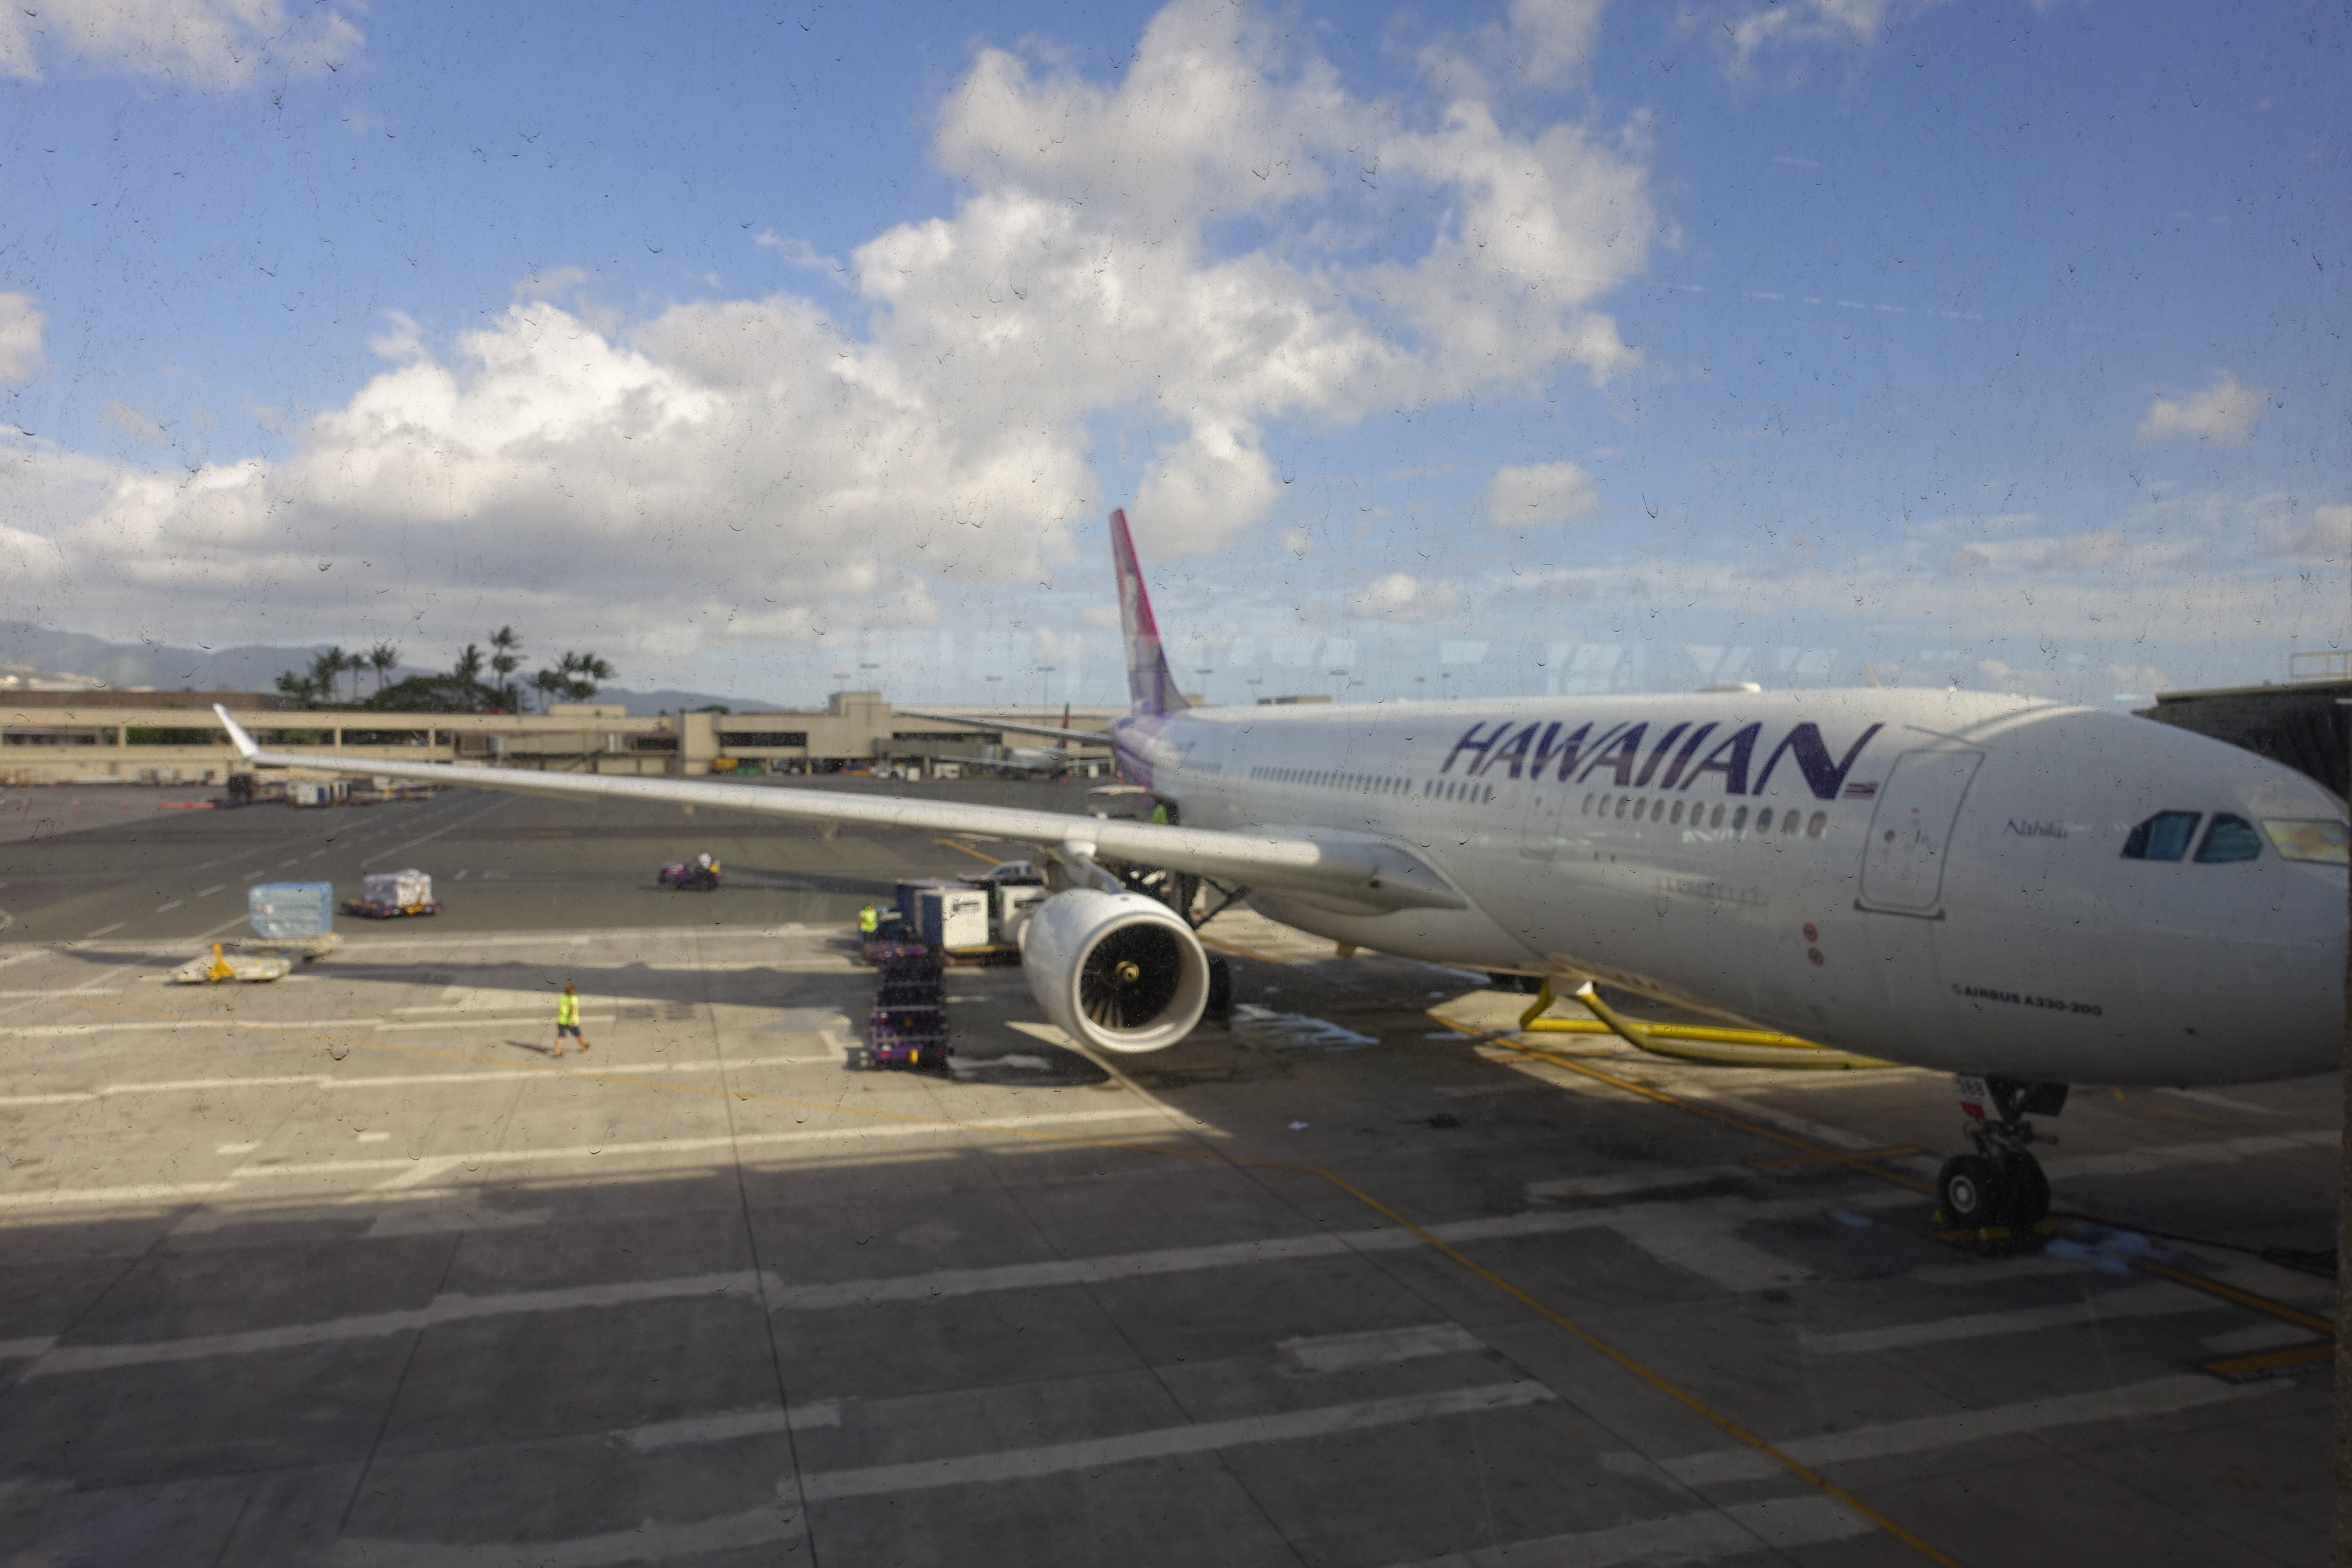 Fully Lie Flat First Cl Product Which Just Began Flying Between Hnl And Jfk A Few Days Ago Yesterday I Had The Chance To Try It Out For Myself